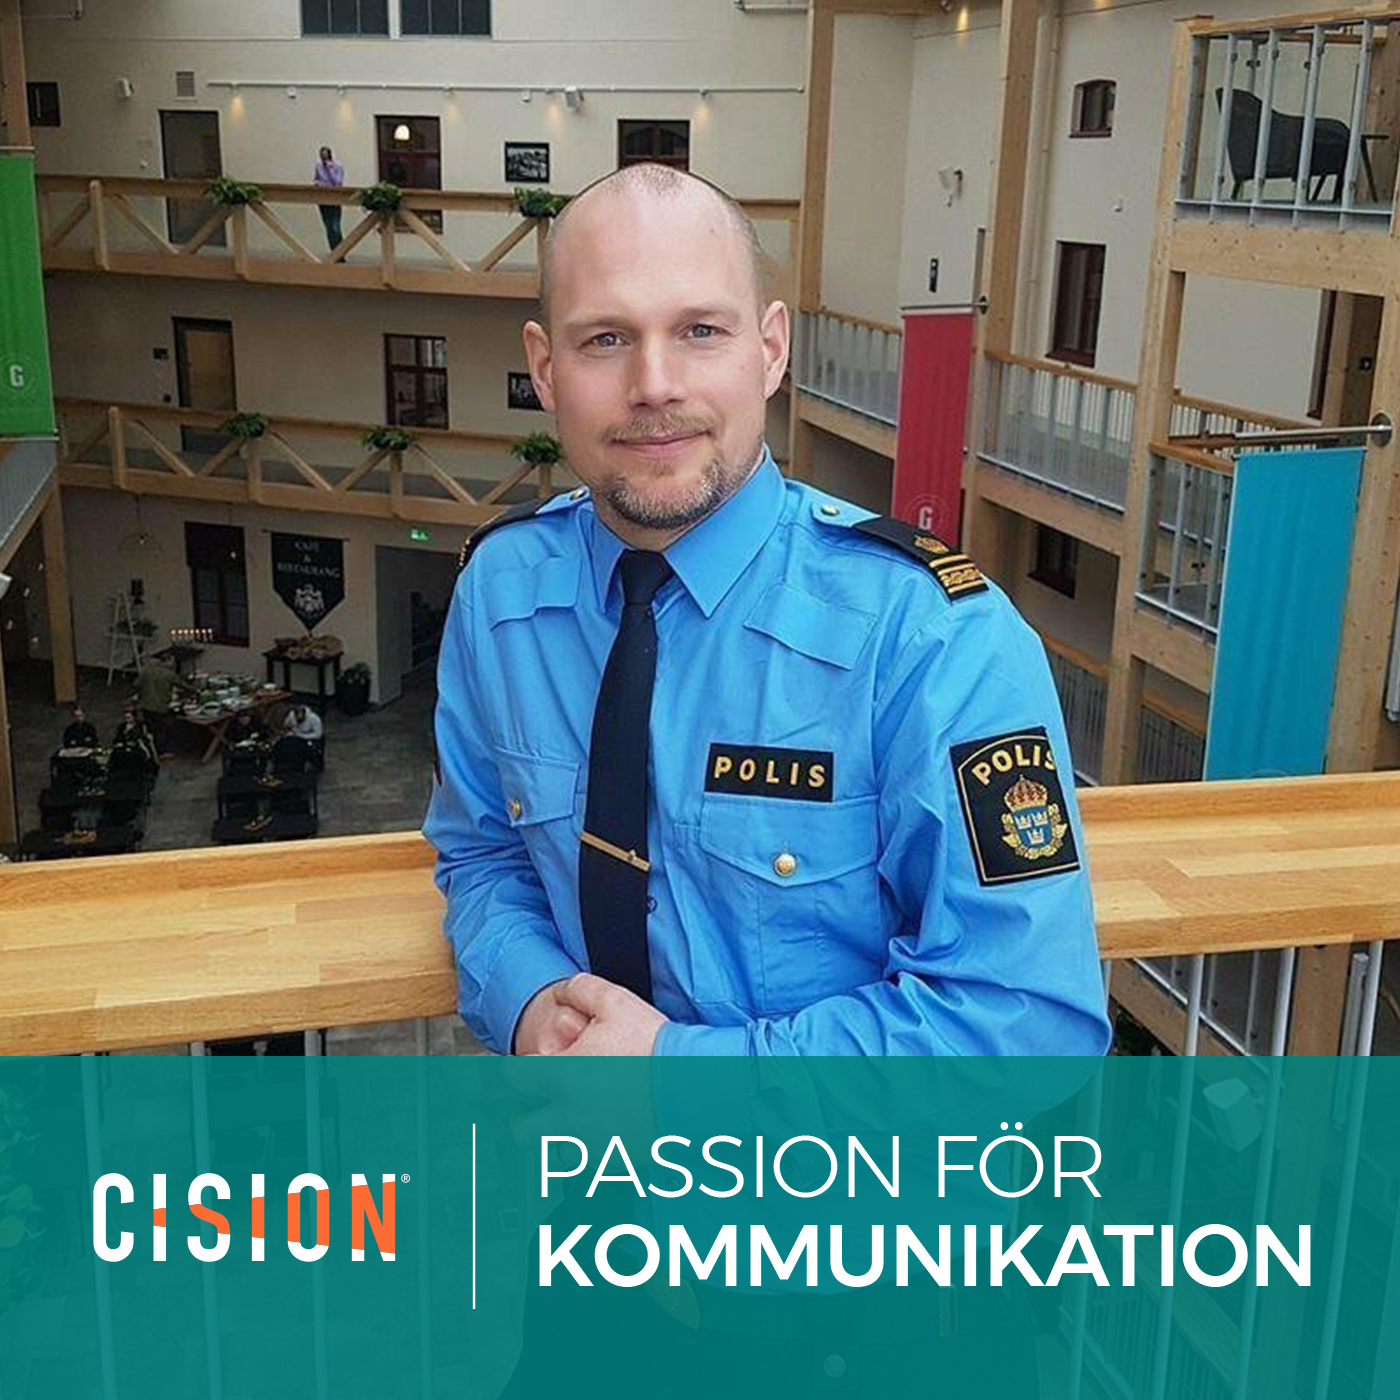 Passion för kommunikation